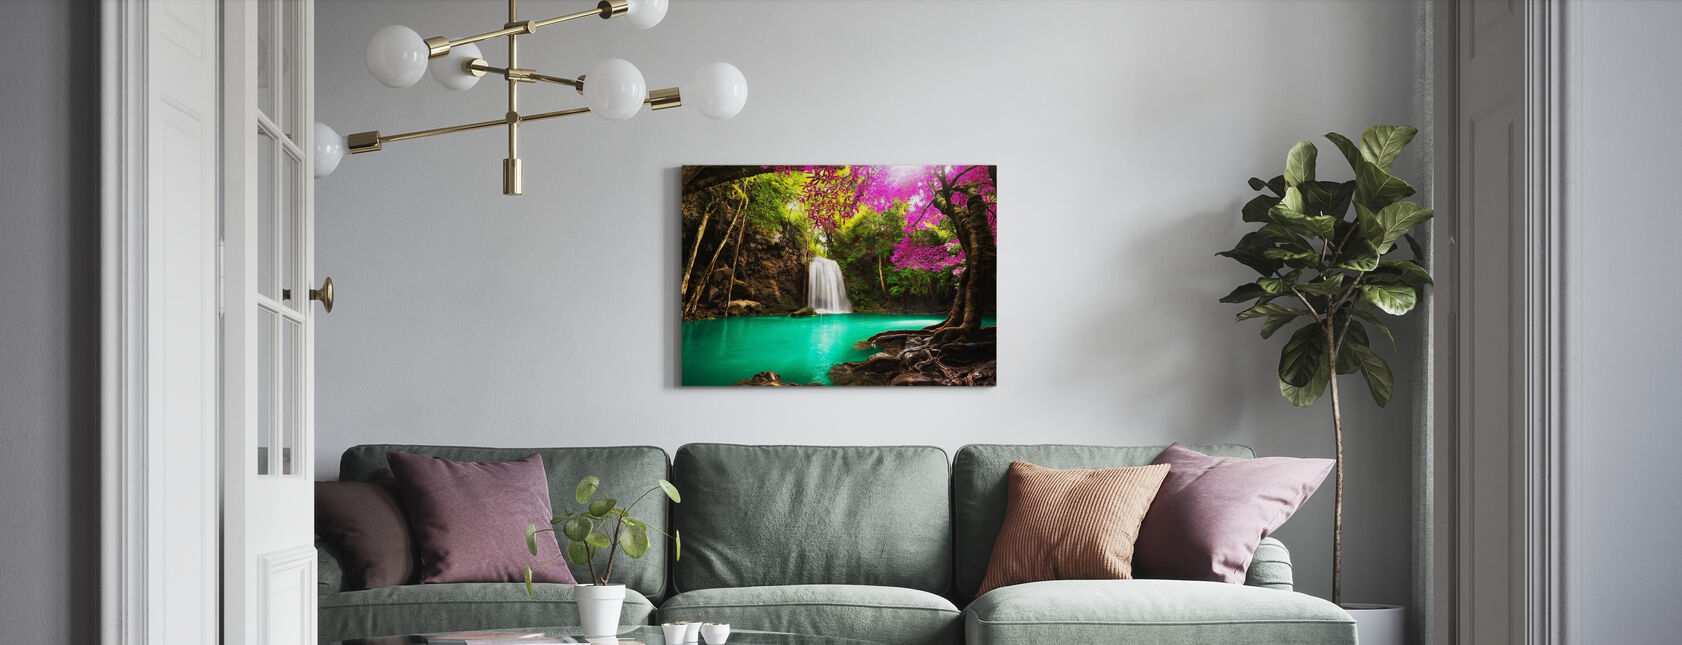 Waterfall in Autumn Forest - Canvas print - Living Room